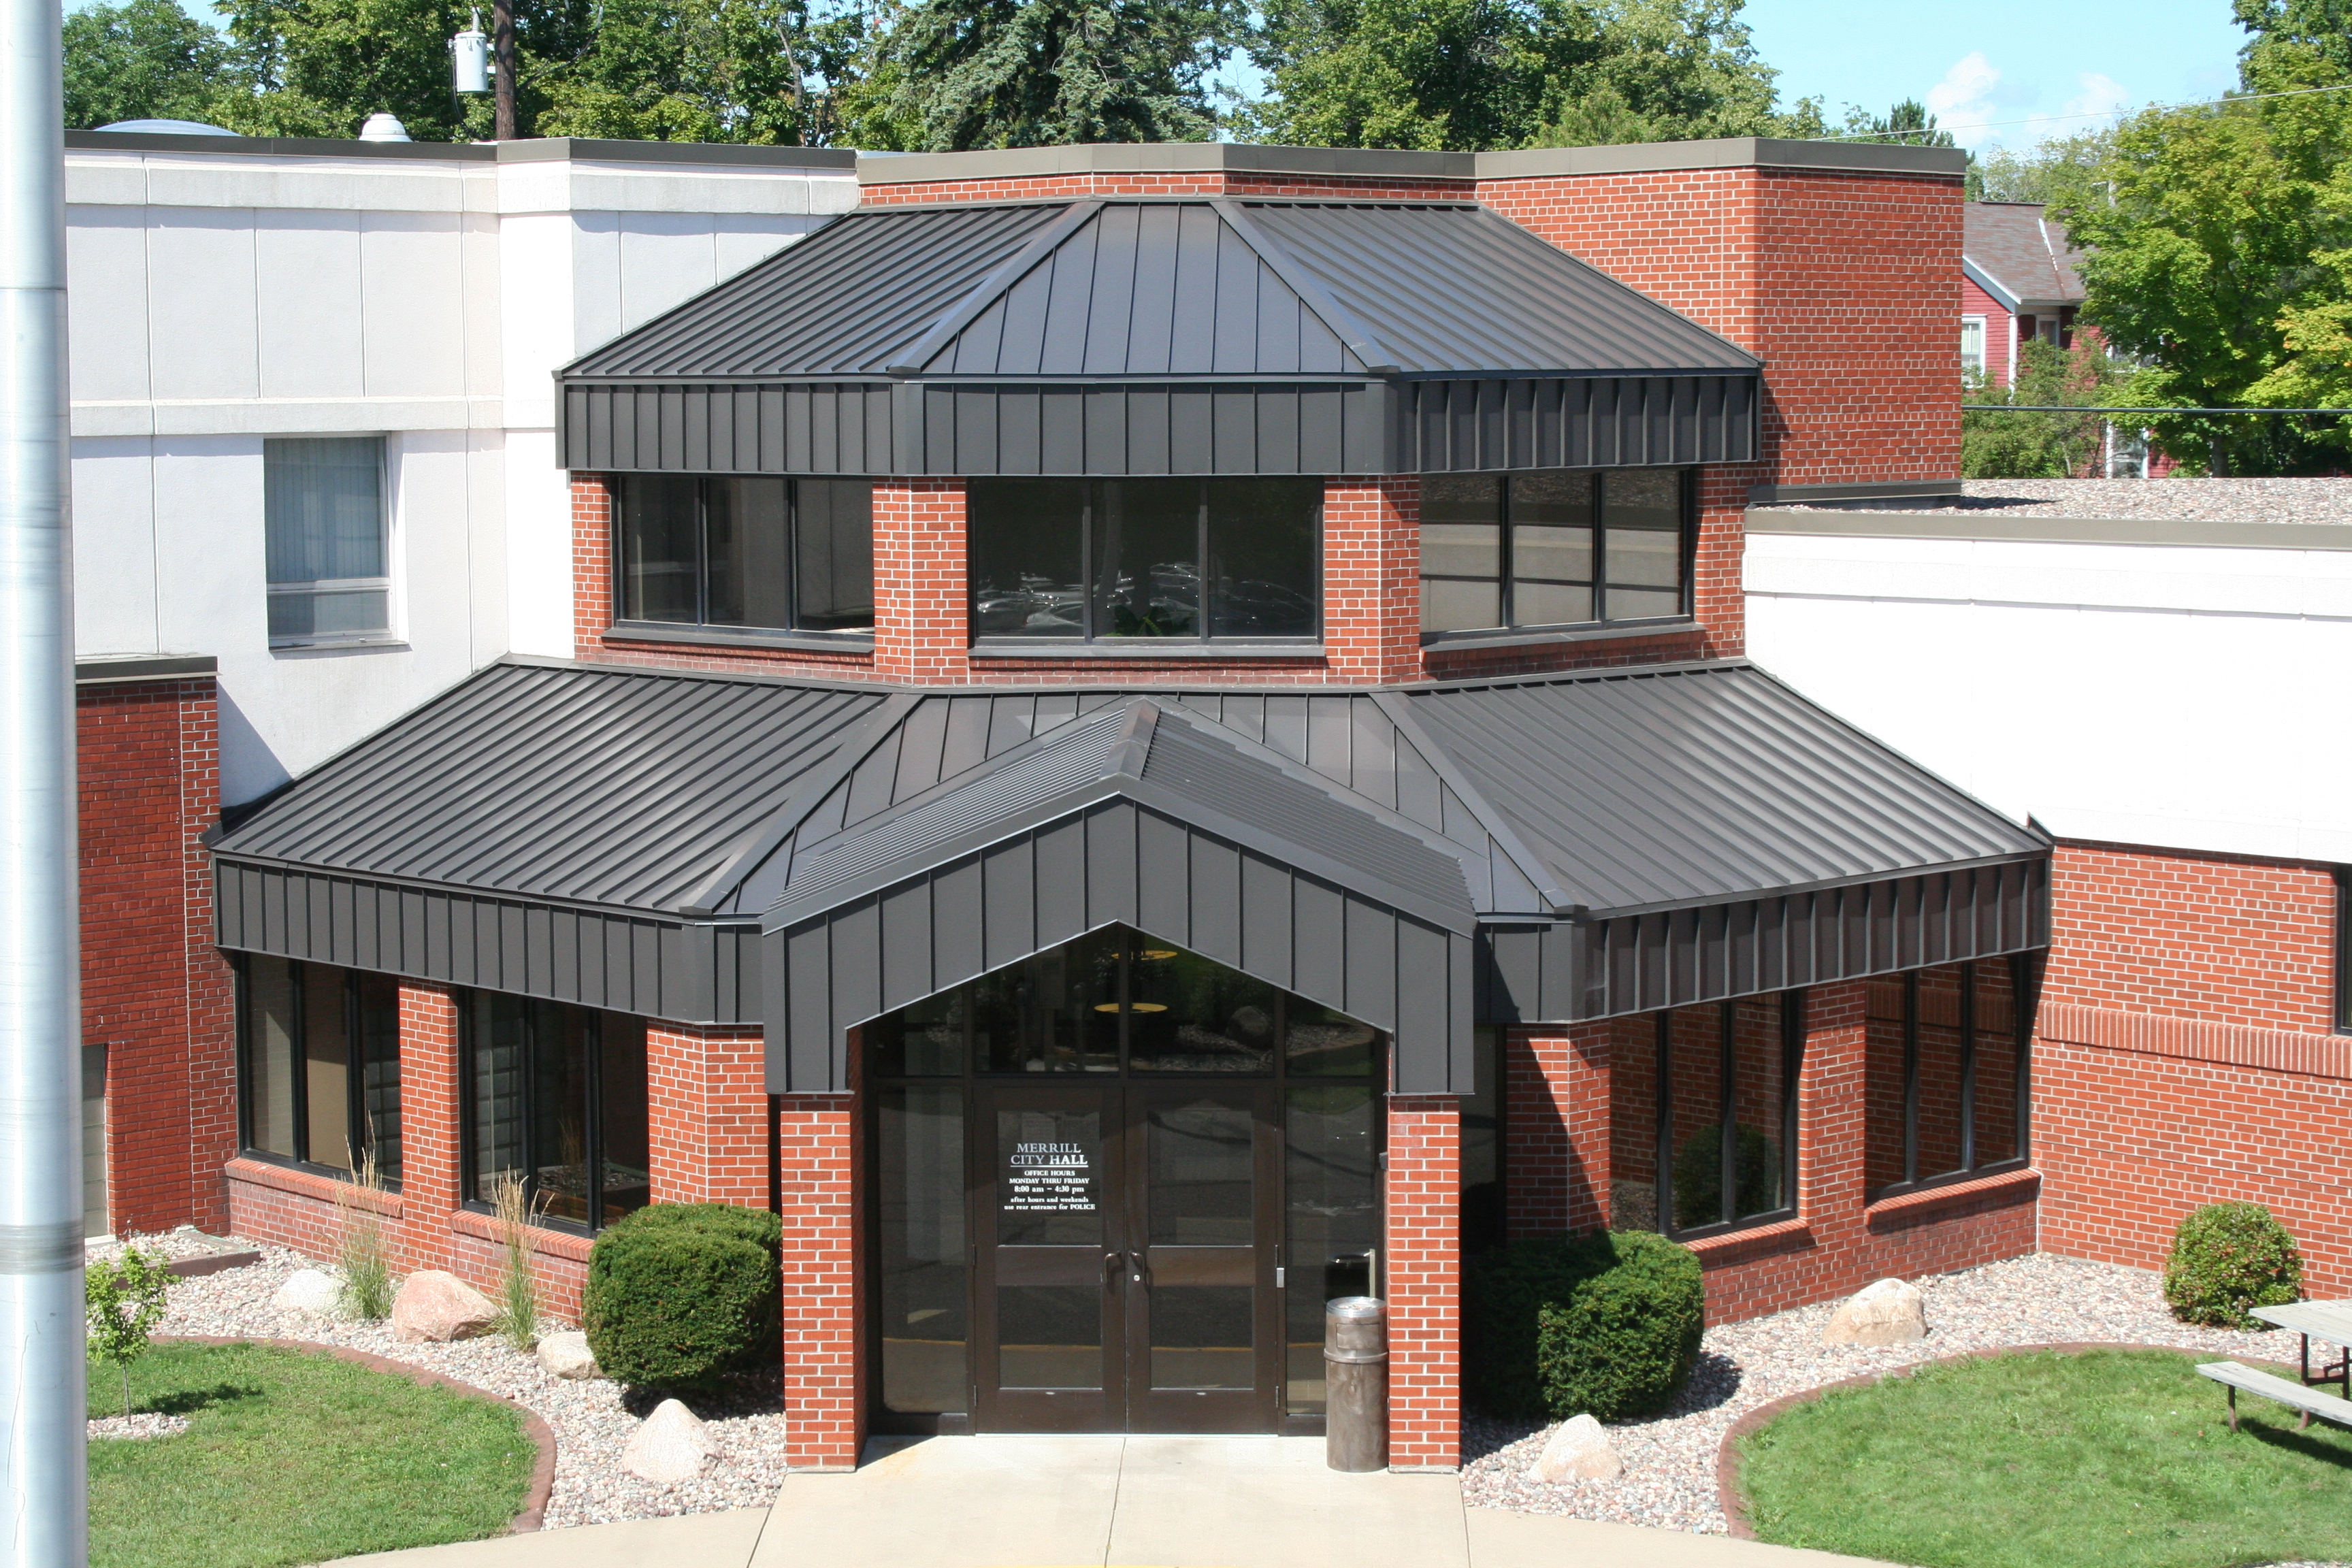 Musket Gray Commercial Coated Metals Group